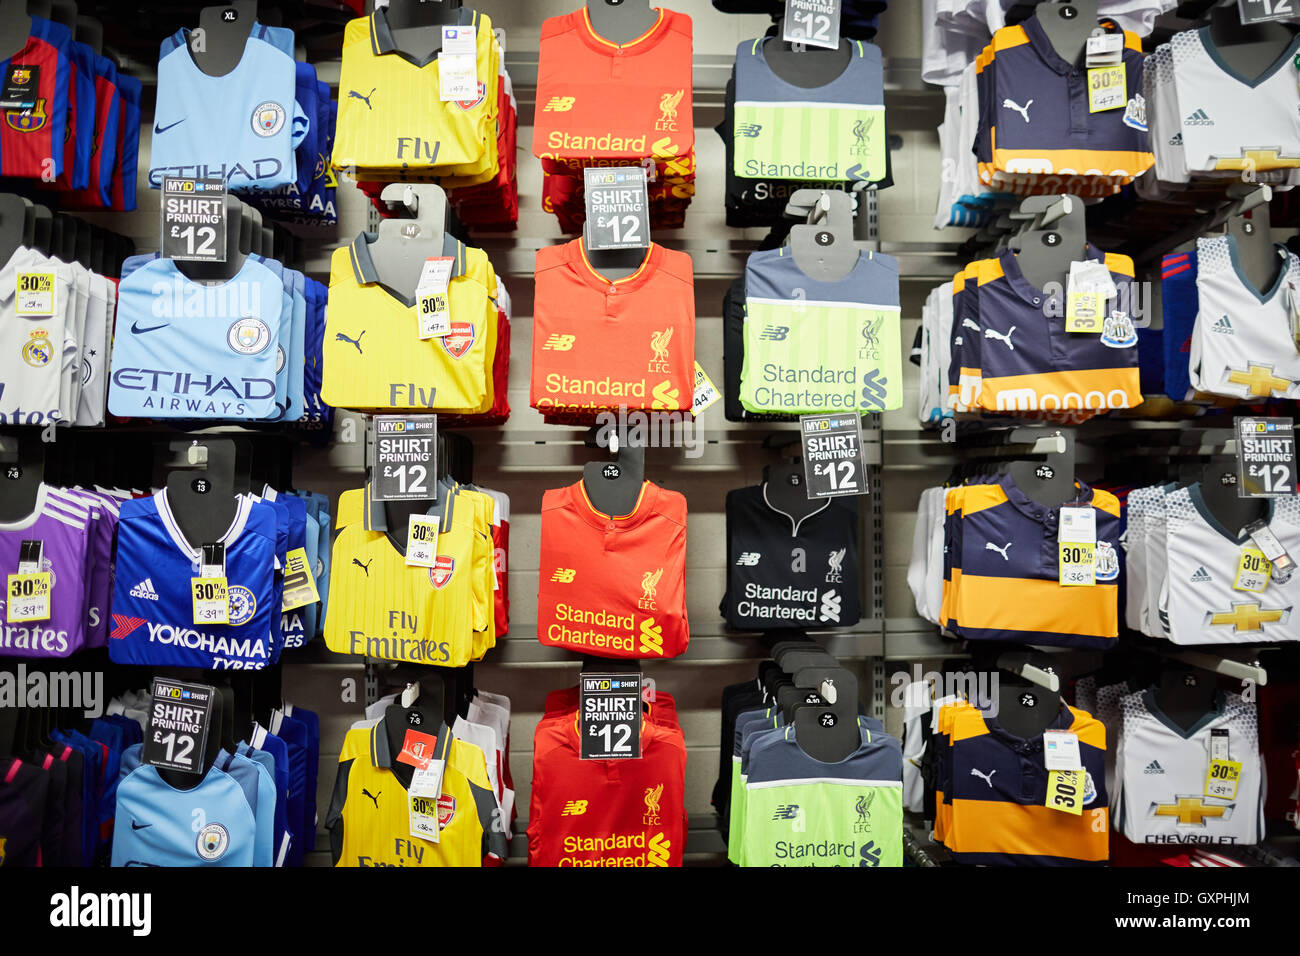 Sports direct football shirts shop display premiership team official  replica shirts tops strip wall display to buy Arsenal Liv 91fdf1b57ce6